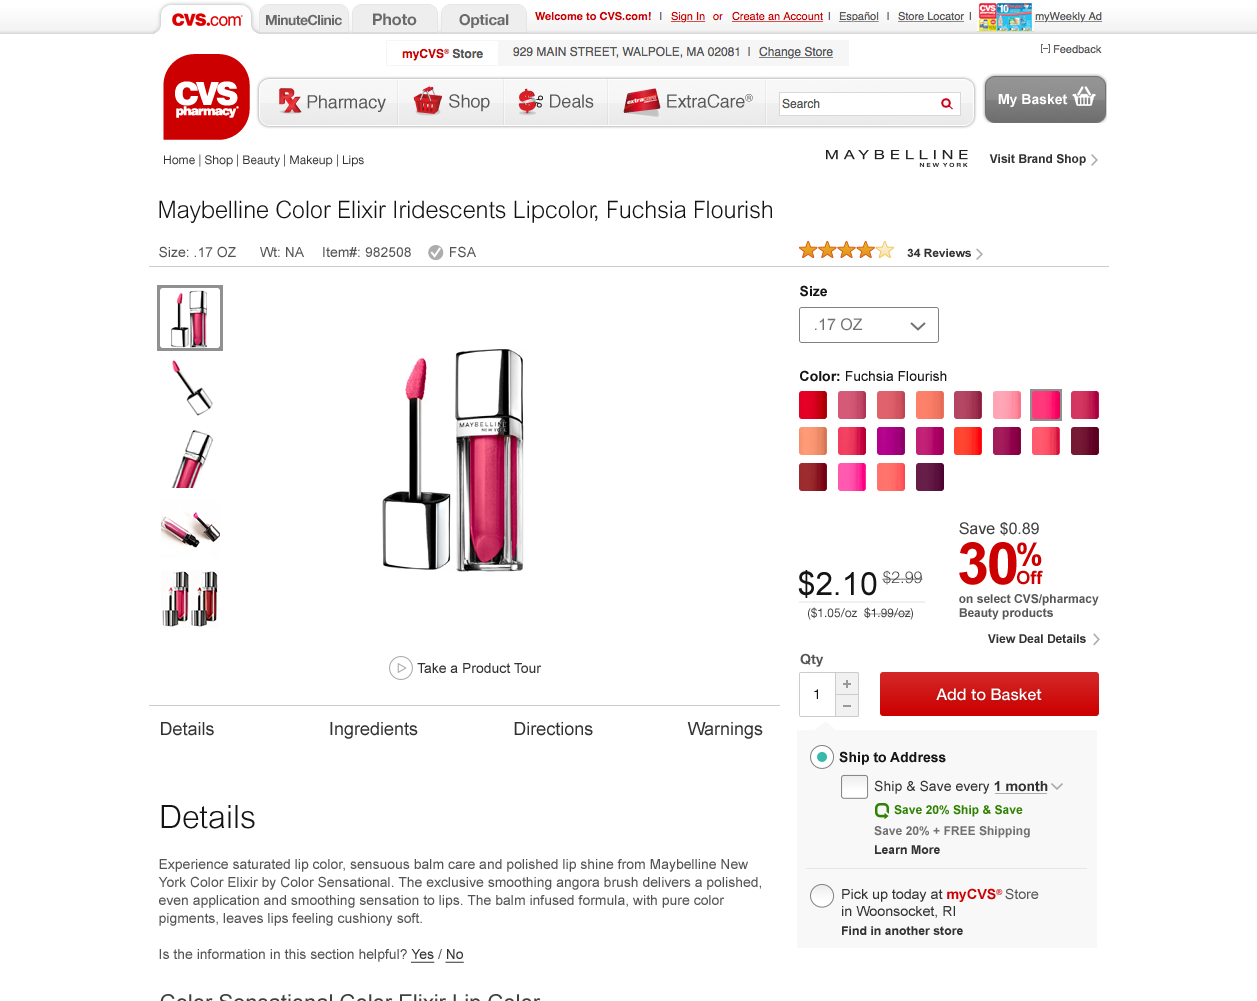 kevin prince cvs product details page